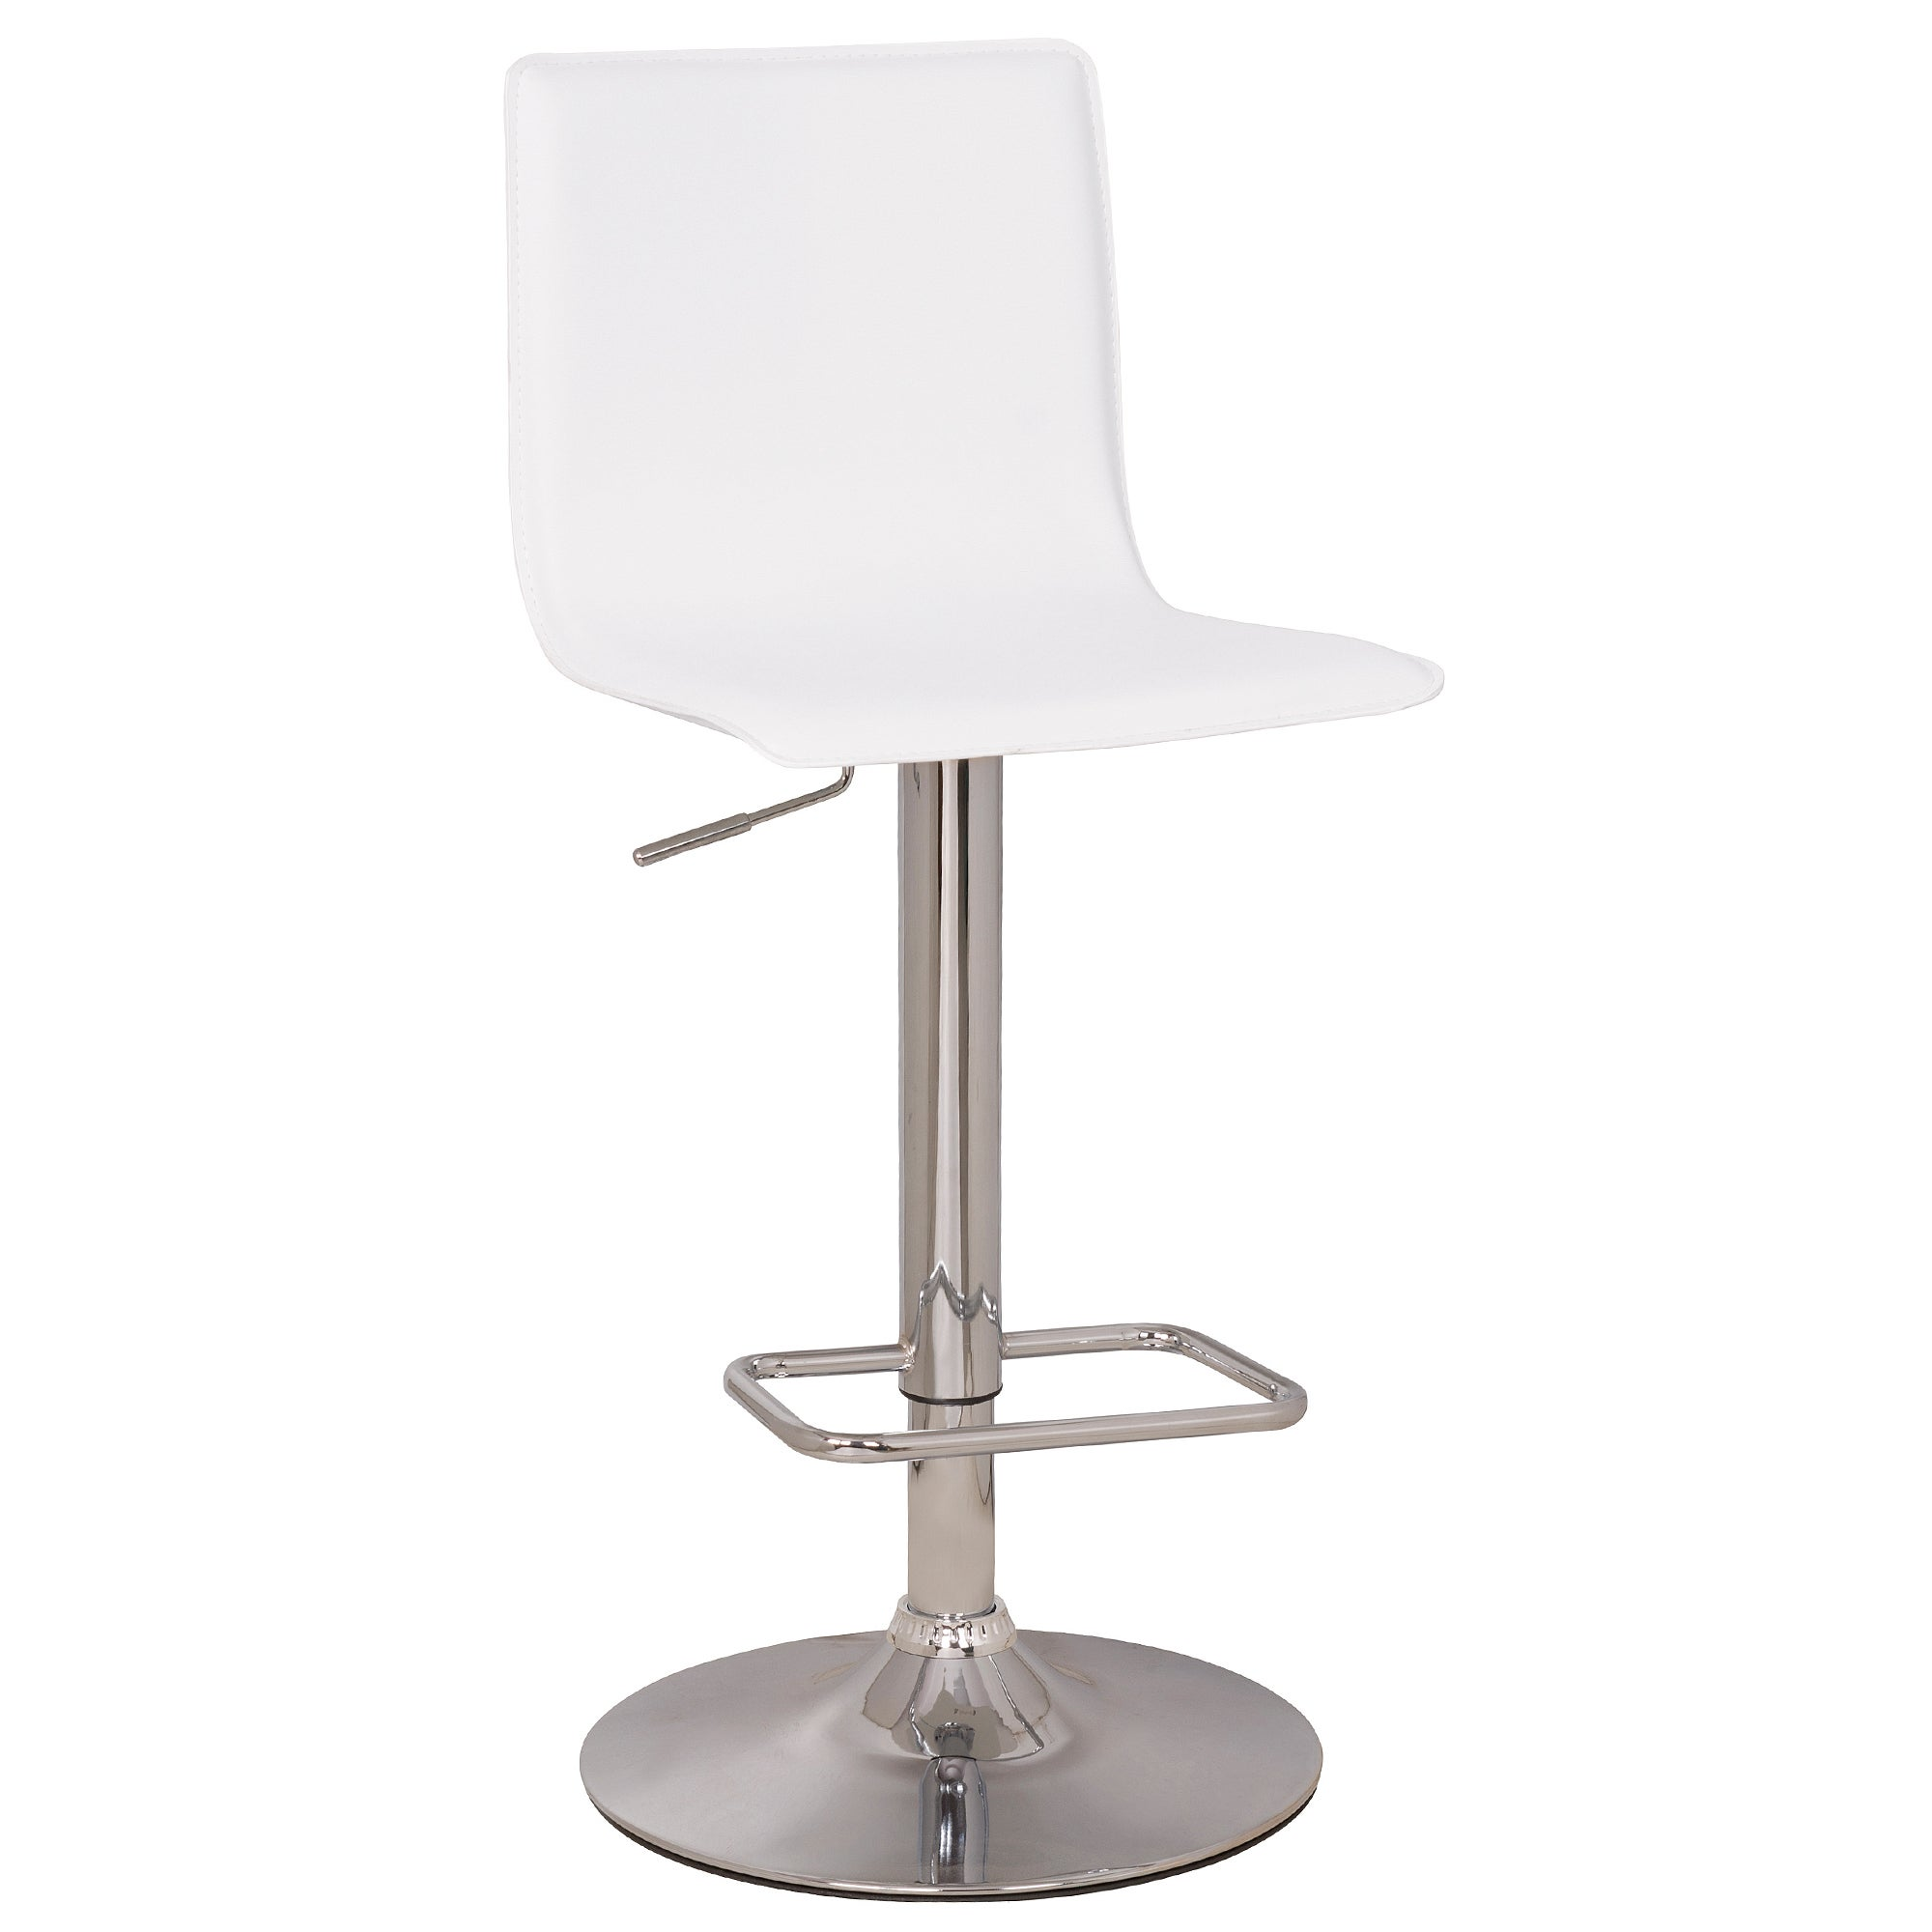 Aura Upholstered Gas Lift Bar Stool